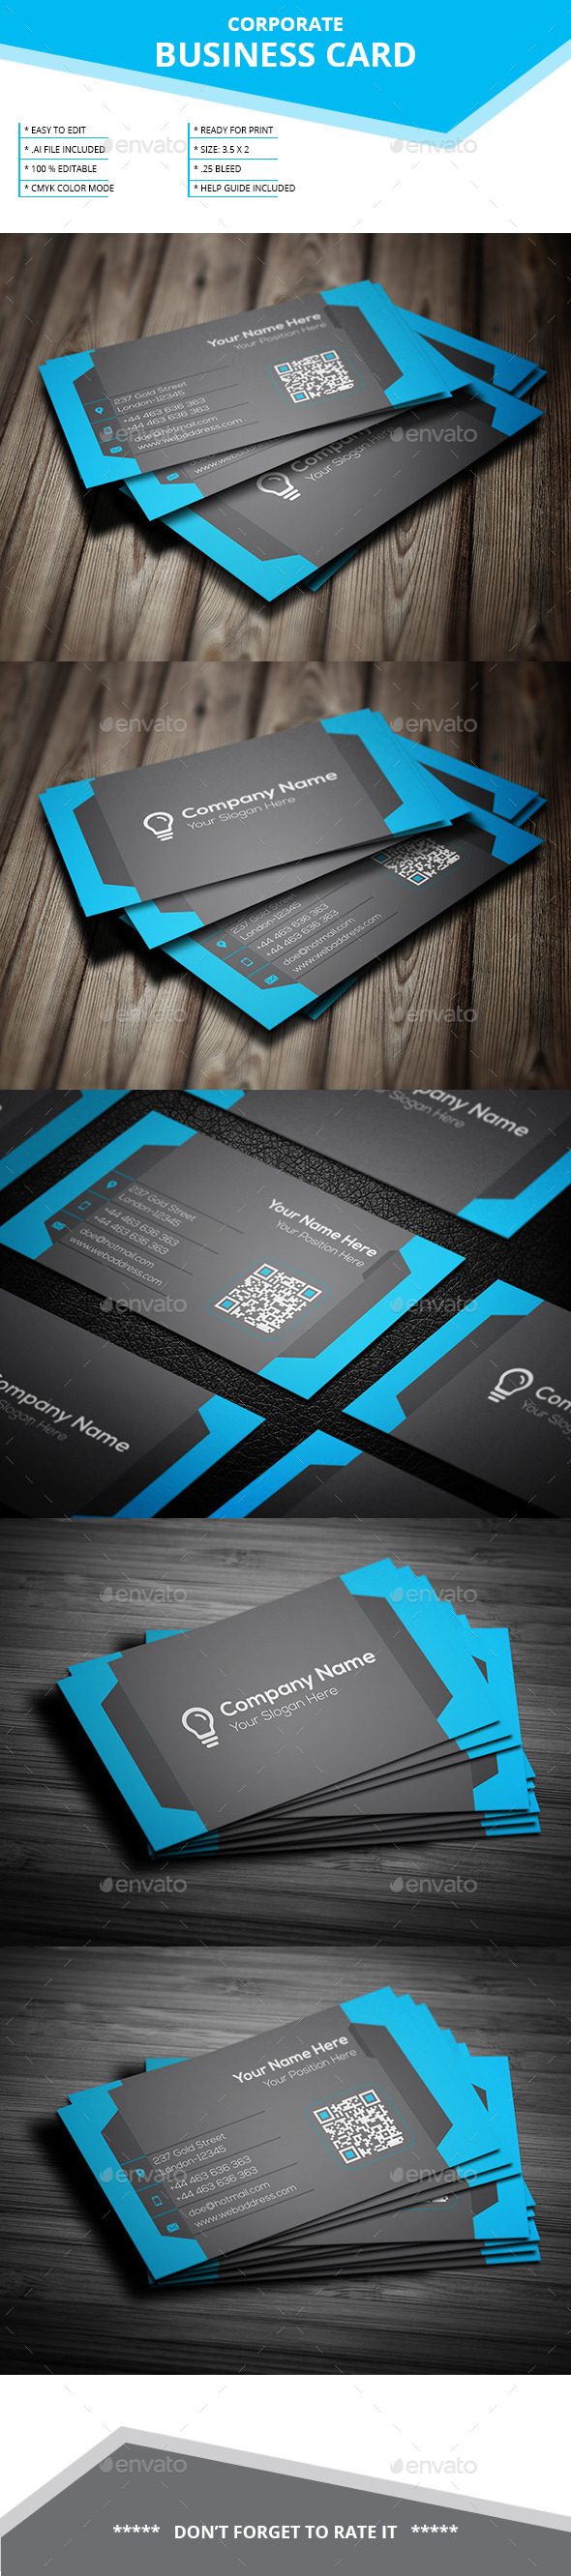 GraphicRiver Corporate Business Card SL 16 11978666